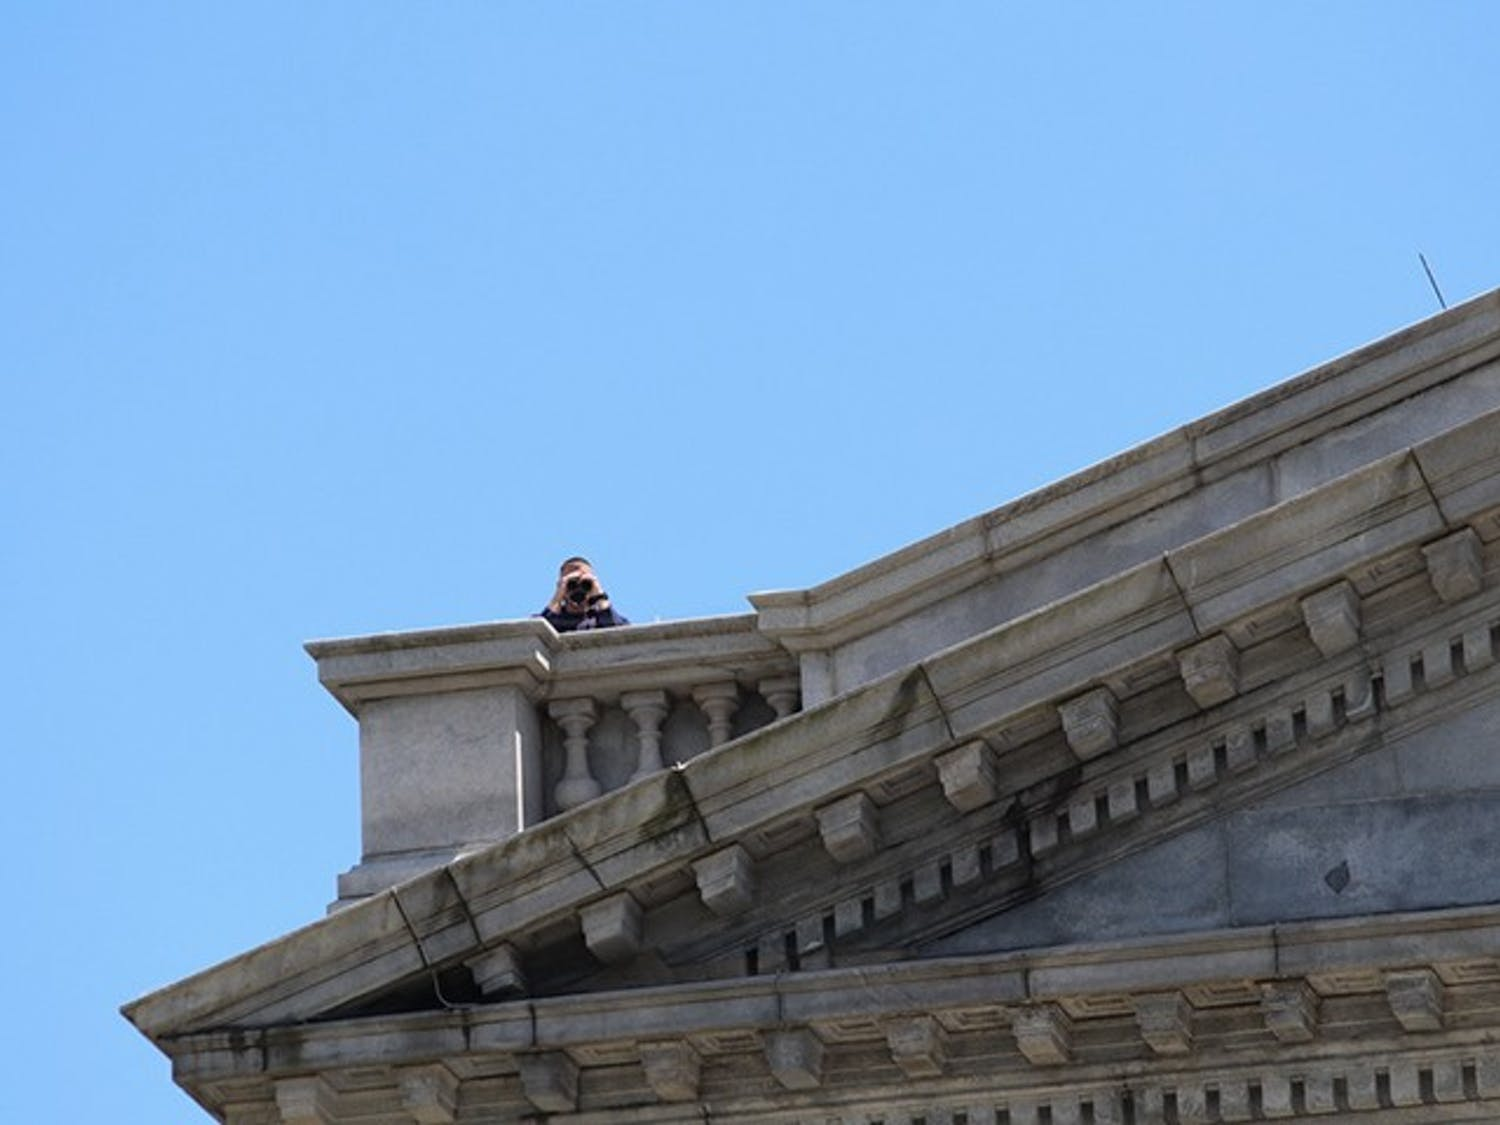 Snipers on the roof of the Statehouse monitor the protest from above.